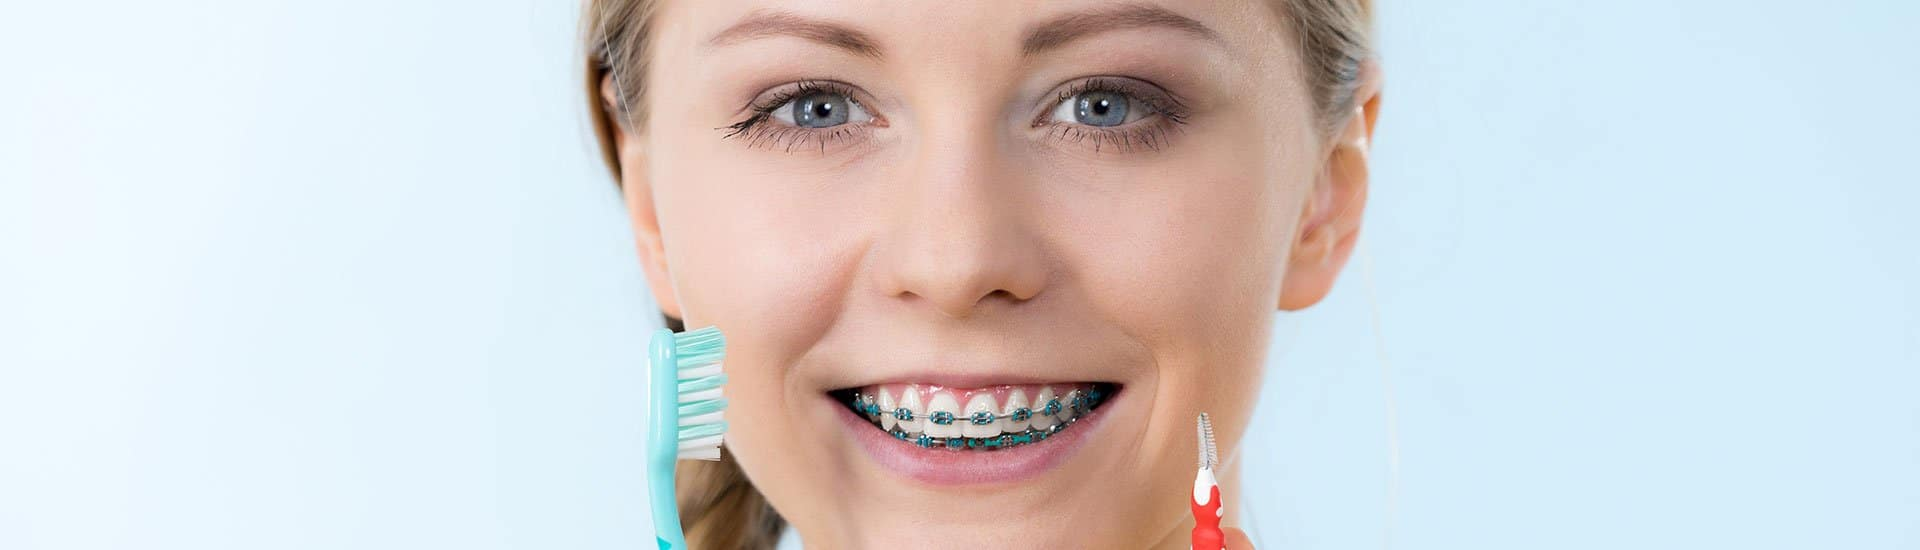 Maintaining Your Braces